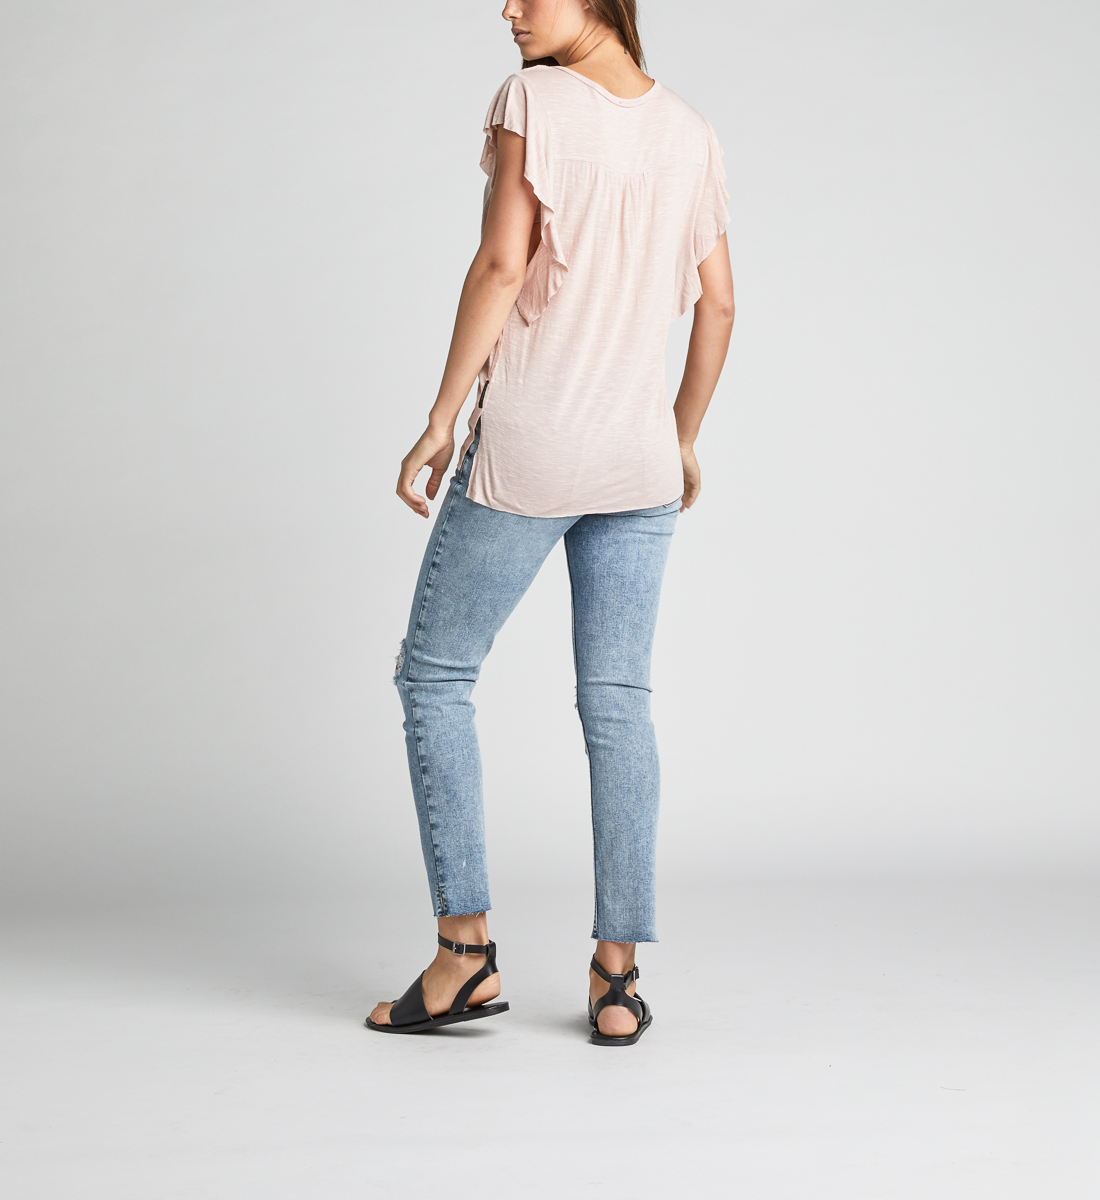 Athena Ruffle-Sleeve Tee,Light Rose Side